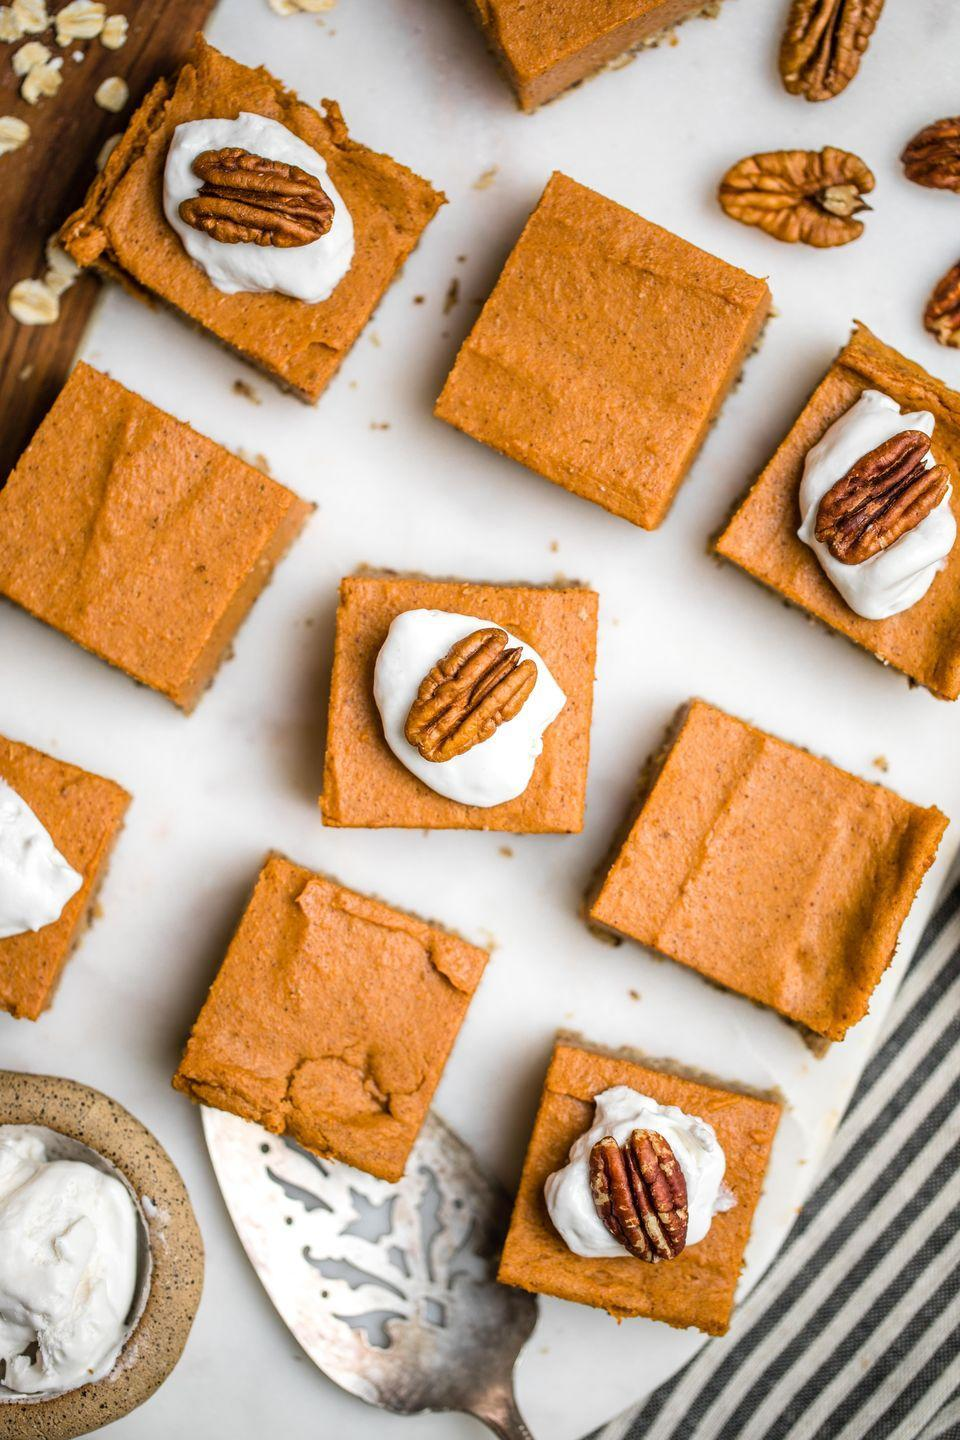 """<p>Looking for a sweet (potato) treat for dessert? You've found it in these completely gluten-free pie bars topped with pecans and whipped cream.</p><p><strong>Get the recipe at <a href=""""https://frommybowl.com/sweet-potato-pie-bars/"""" rel=""""nofollow noopener"""" target=""""_blank"""" data-ylk=""""slk:From My Bowl"""" class=""""link rapid-noclick-resp"""">From My Bowl</a>.</strong></p><p><strong><strong><a class=""""link rapid-noclick-resp"""" href=""""https://www.amazon.com/Nordic-Ware-Natural-Aluminum-Commercial/dp/B0064OM53G/?tag=syn-yahoo-20&ascsubtag=%5Bartid%7C10050.g.877%5Bsrc%7Cyahoo-us"""" rel=""""nofollow noopener"""" target=""""_blank"""" data-ylk=""""slk:SHOP BAKING SHEETS"""">SHOP BAKING SHEETS</a></strong></strong></p>"""